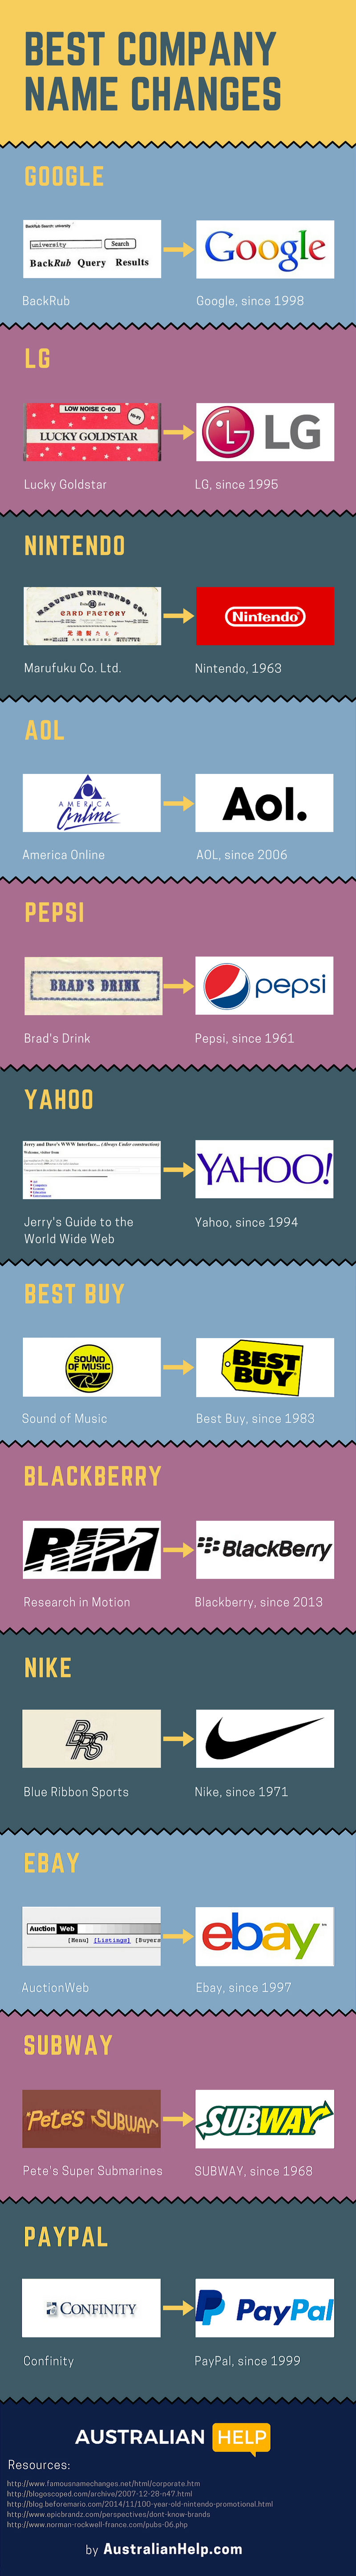 1481299984_best-company-name-changes-infographic